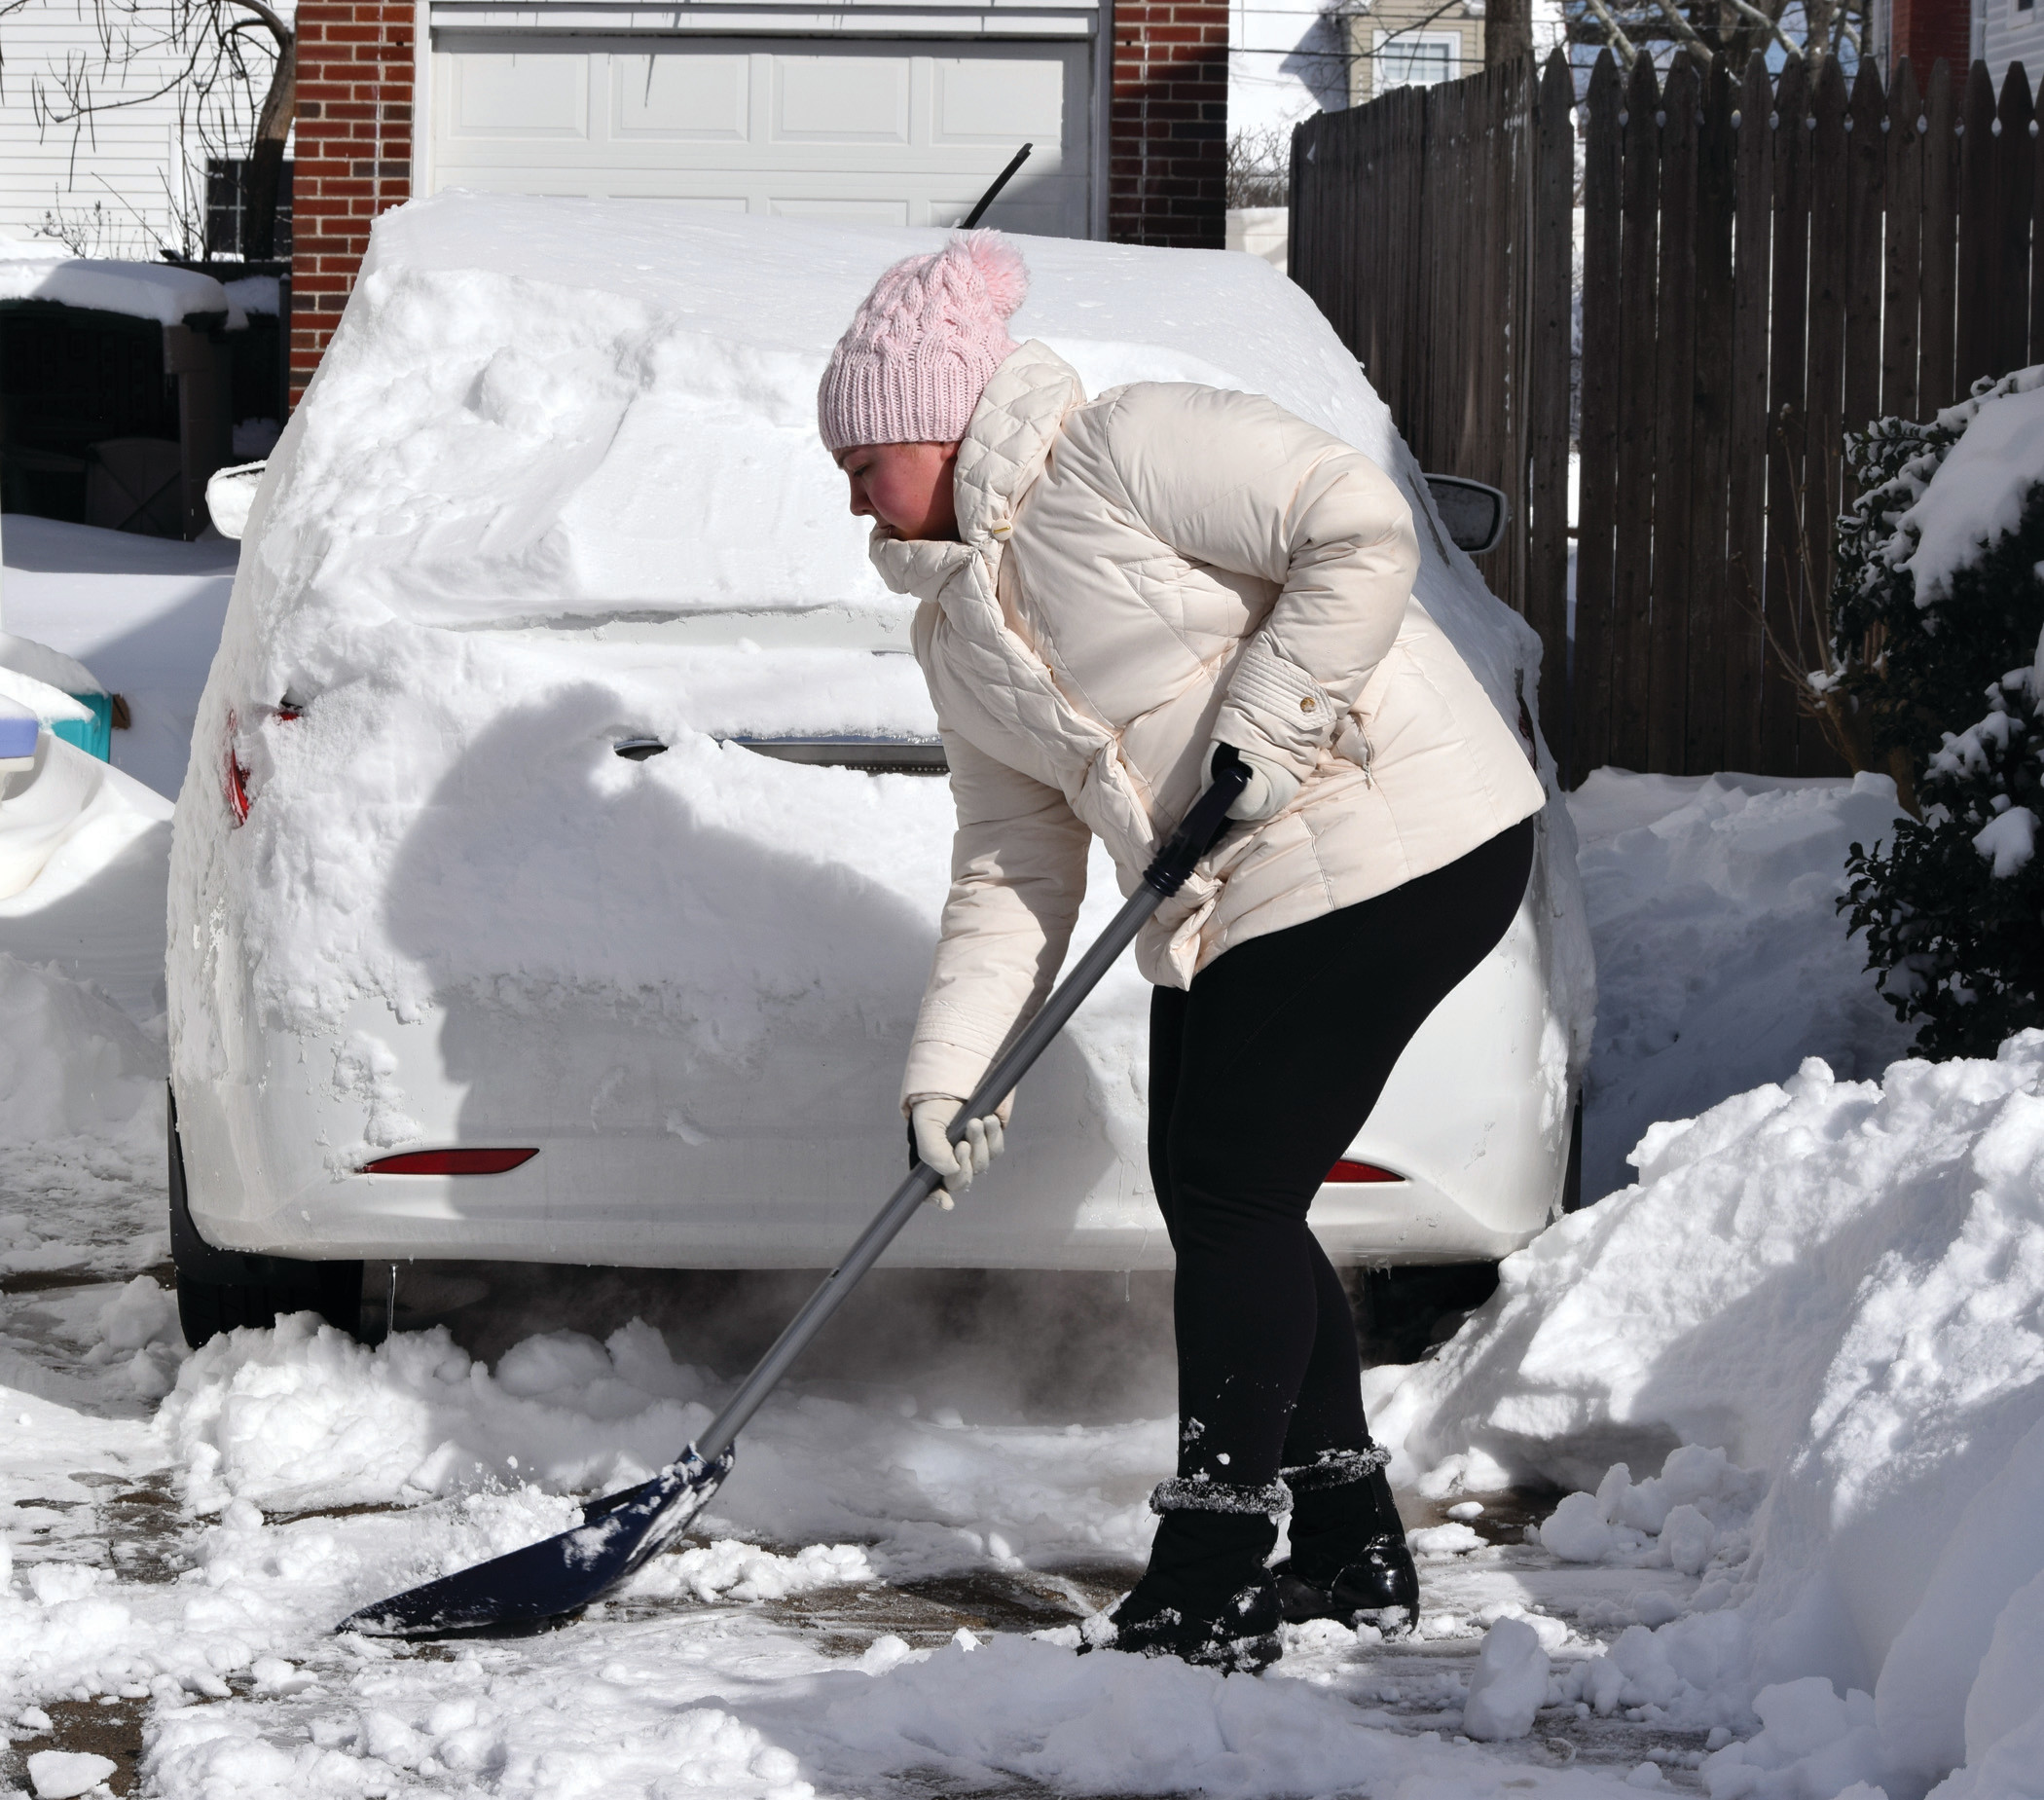 CLEARING THE WAY: Gianna Rotella, 20, shovels out her driveway on Friday morning.